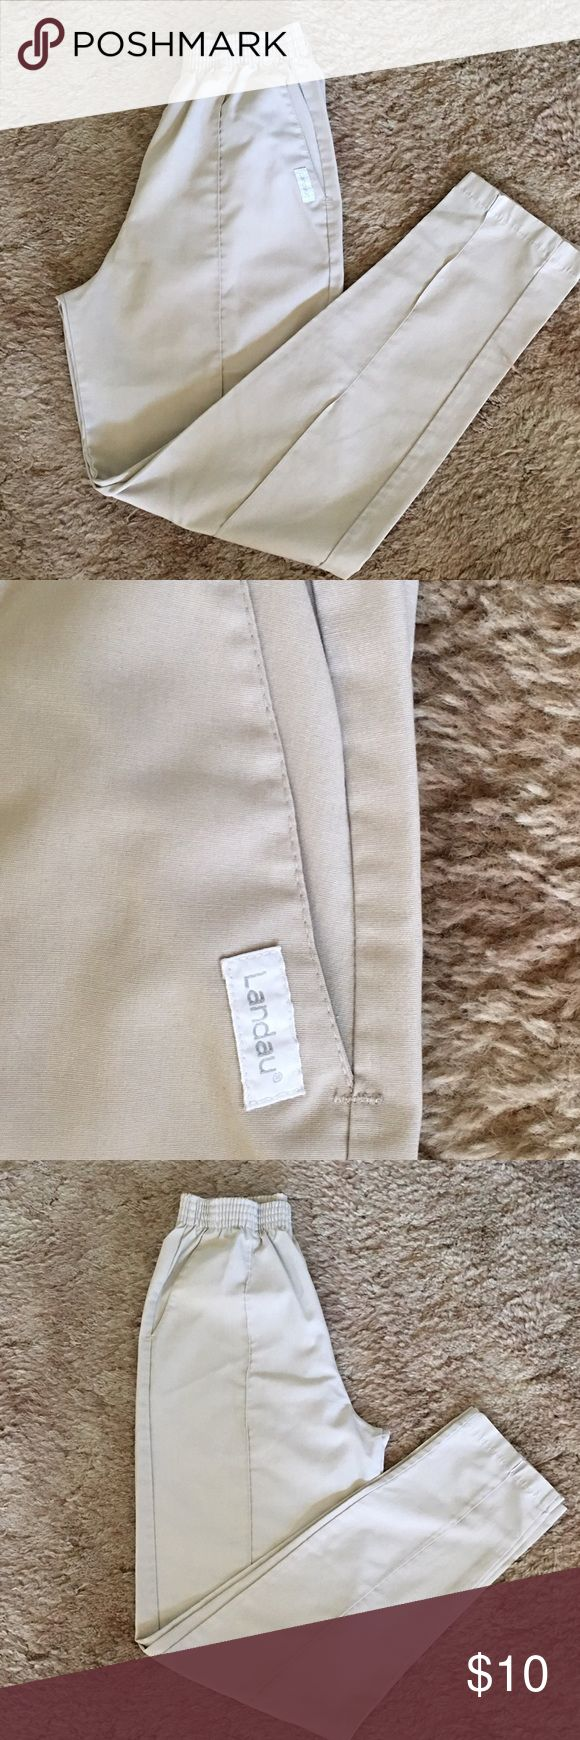 Tan Landau Scrub Pants! ✨Tan Landau Scrub Pants! Have 2 deep pockets on each side of pants. Elastic waistband. In Excellent Condition! Size: Small/Tall.✨ Landau Pants